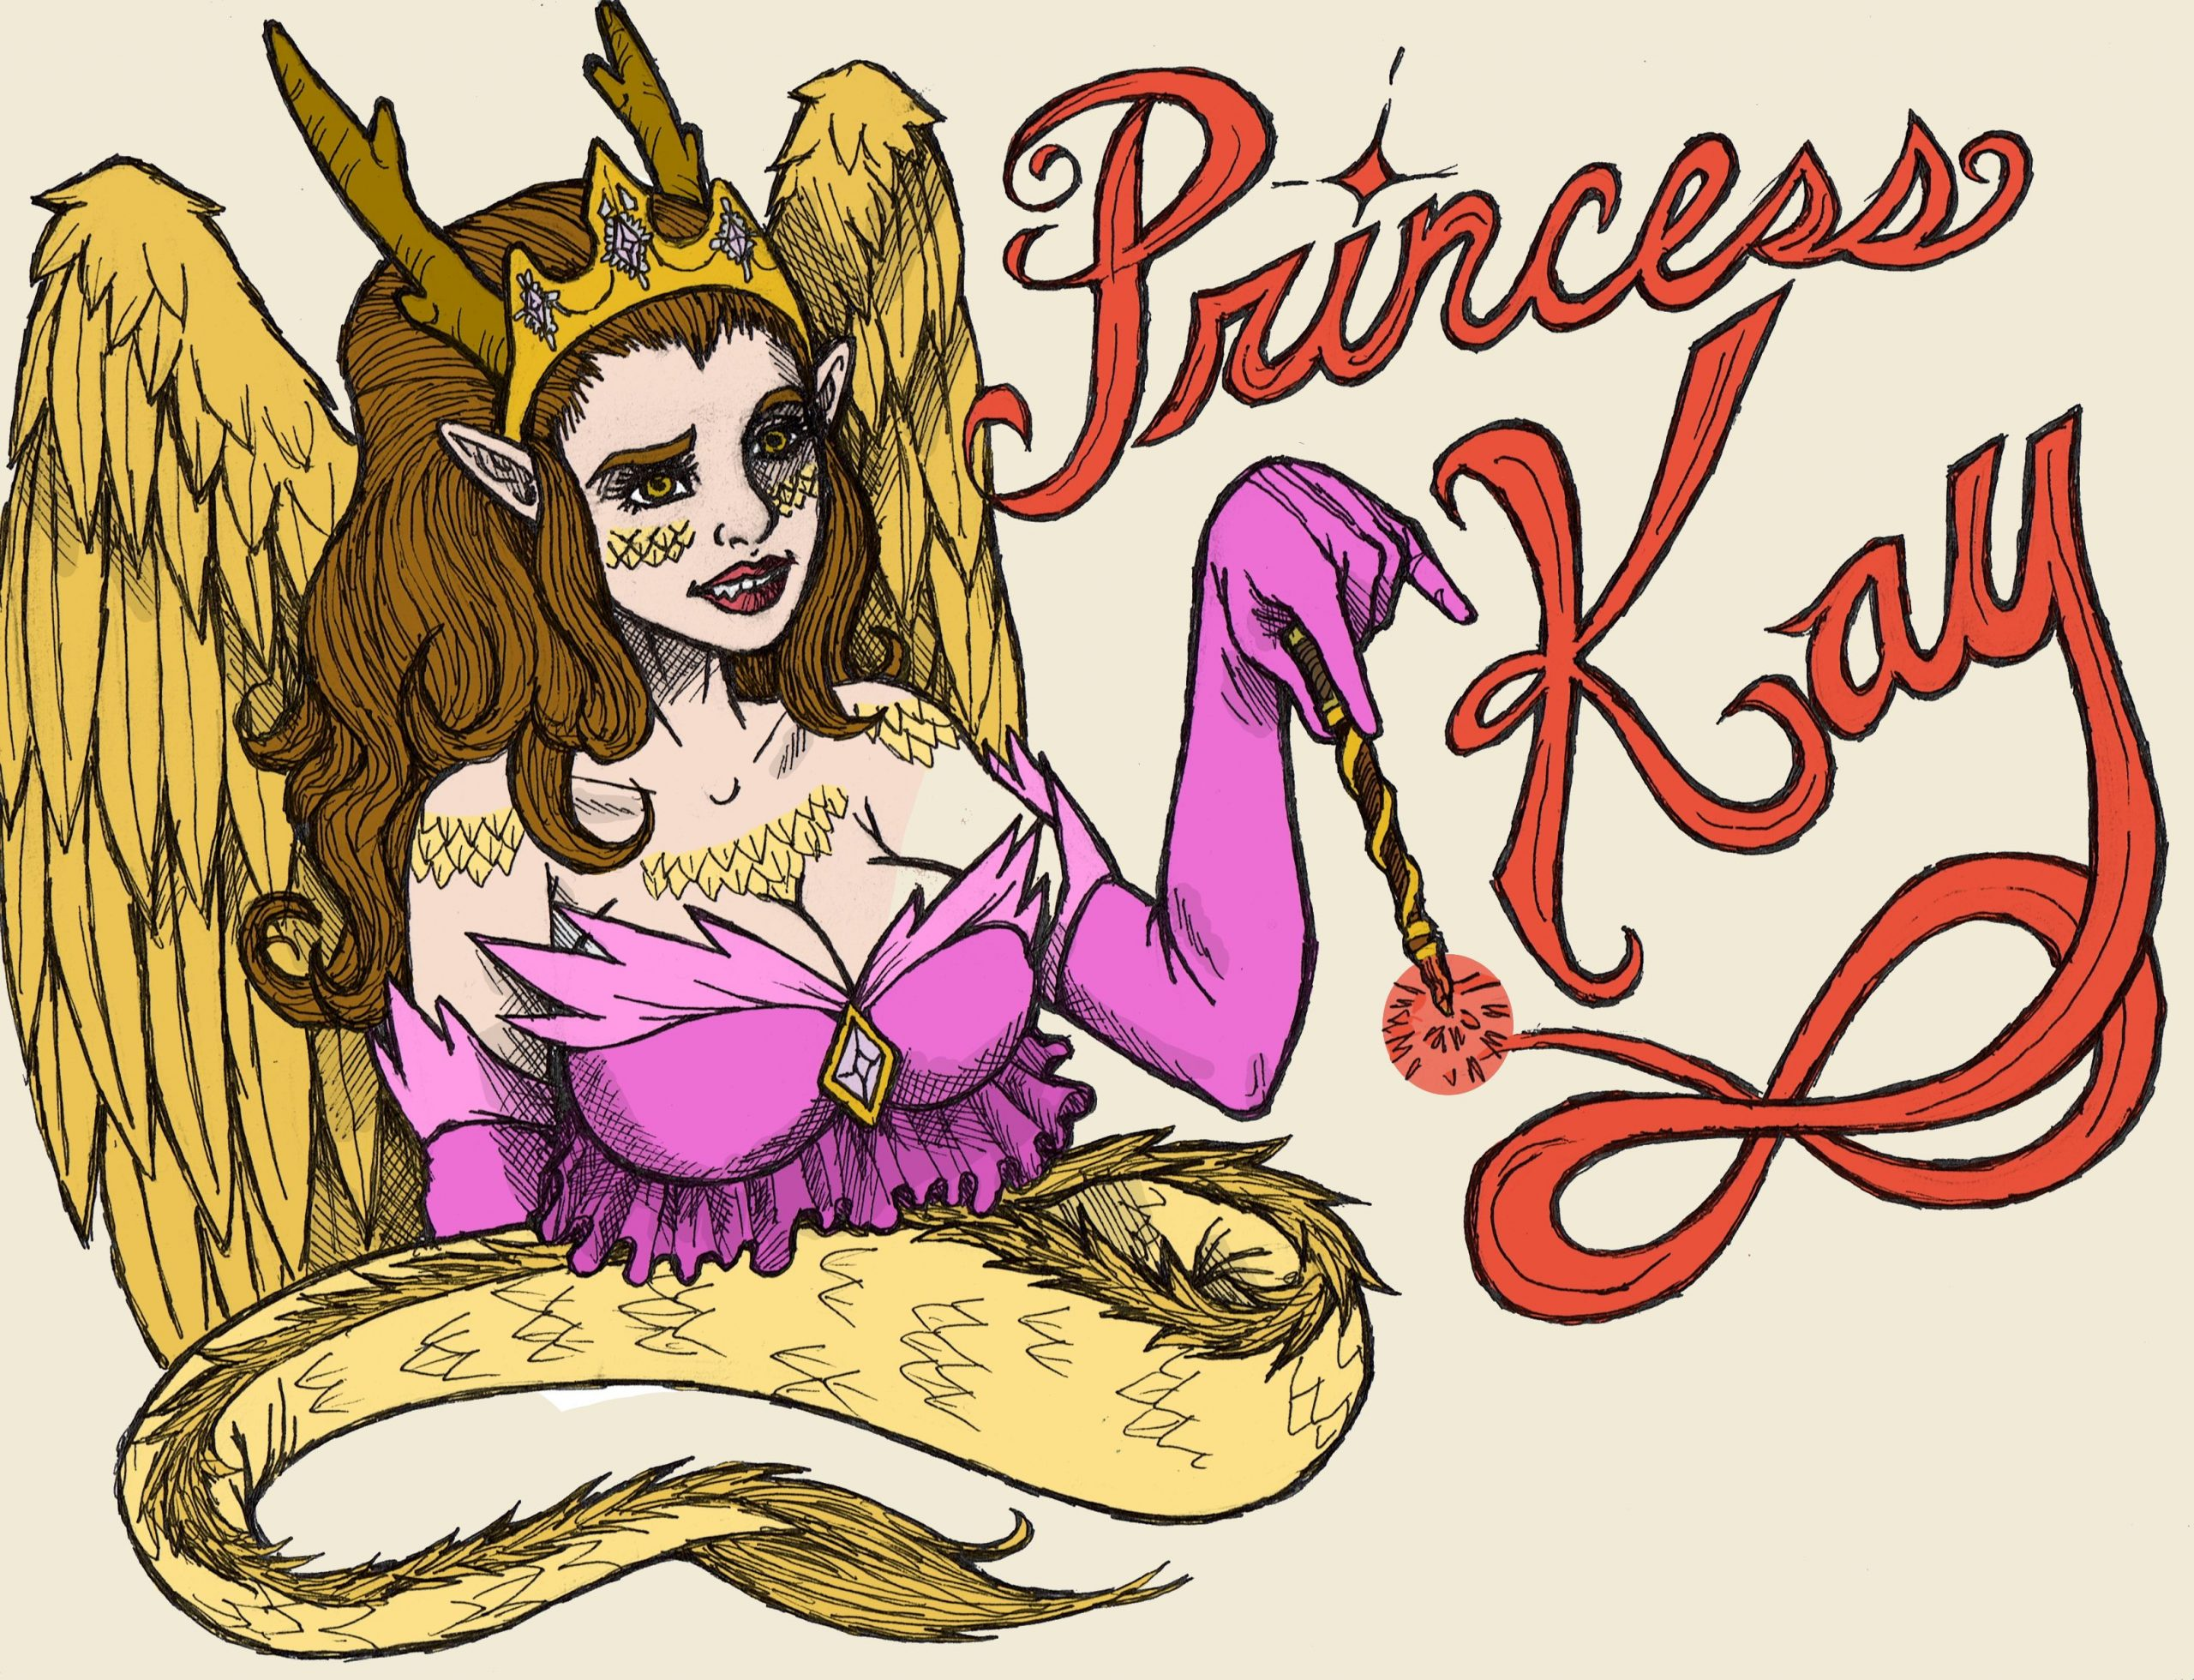 A dragon girl, making the words Princess Kay with her wand